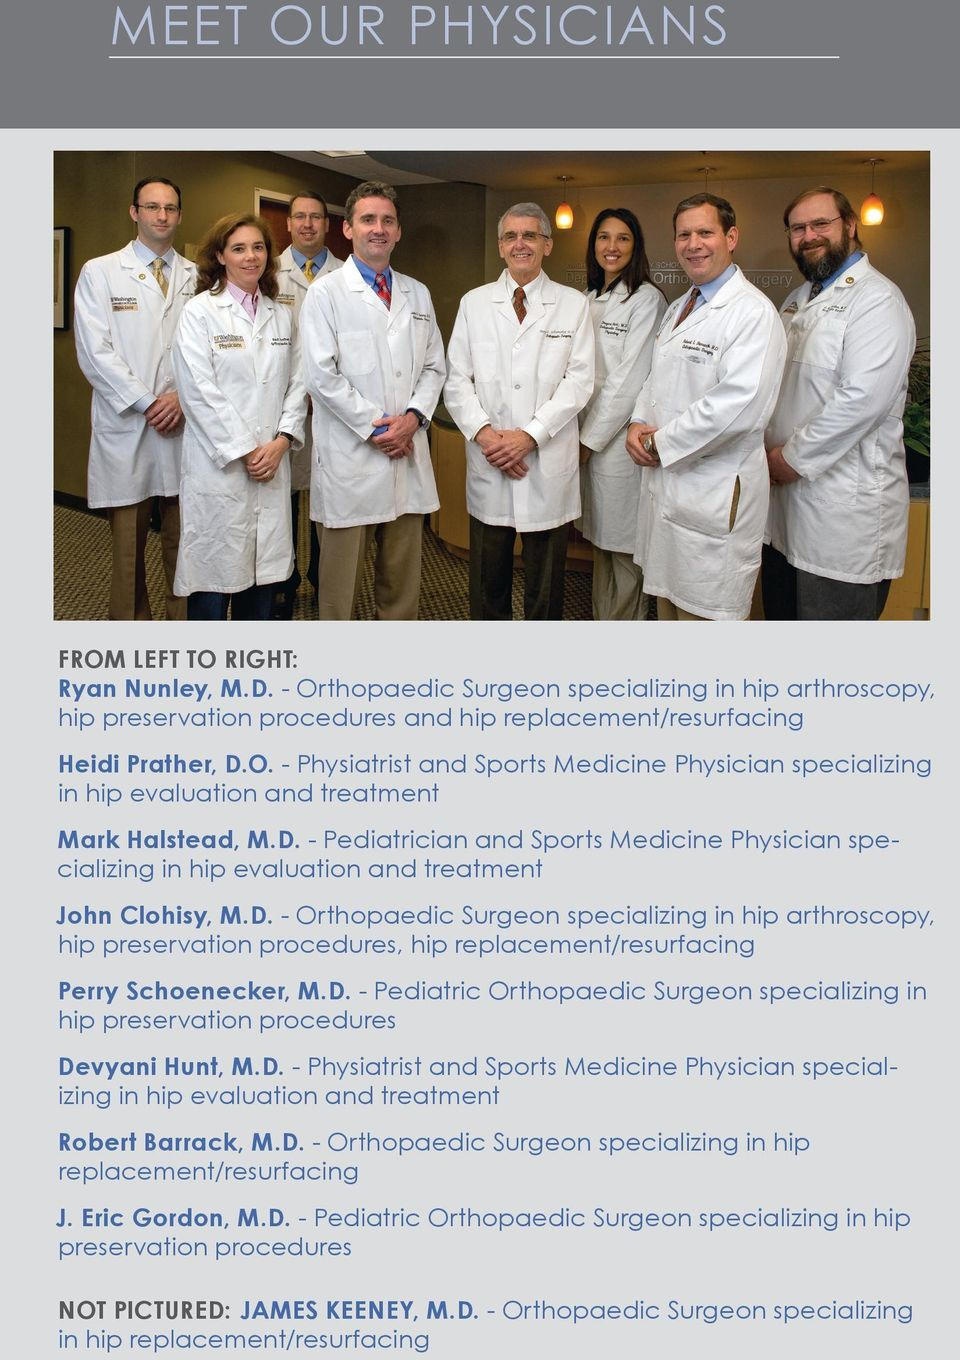 D. - Pediatric Orthopaedic Surgeon specializing in hip preservation procedures Devyani Hunt, M.D. - Physiatrist and Sports Medicine Physician specializing in hip evaluation and treatment Robert Barrack, M.